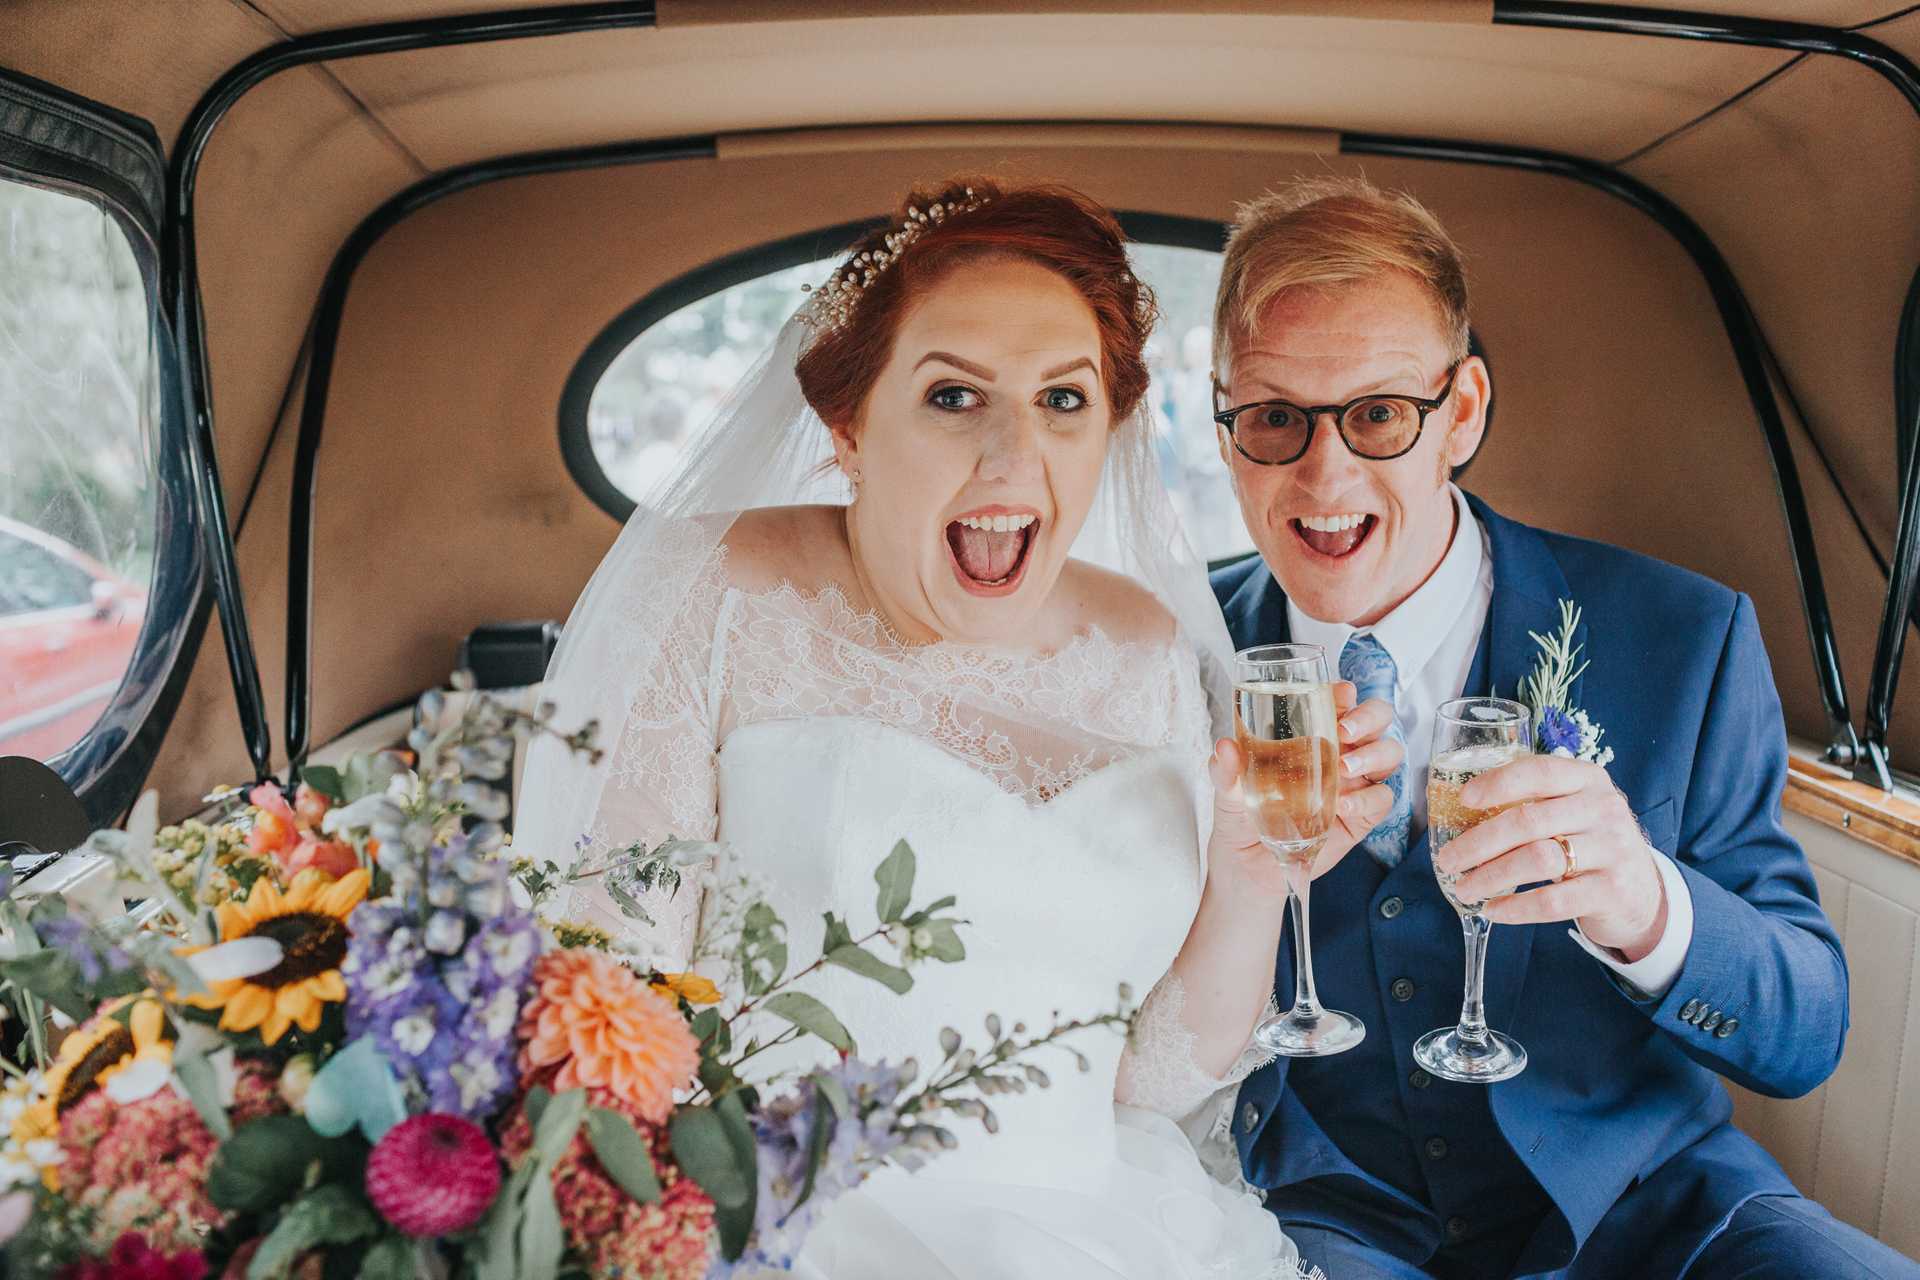 Bride and groom have excited faces in the back on the wedding car.